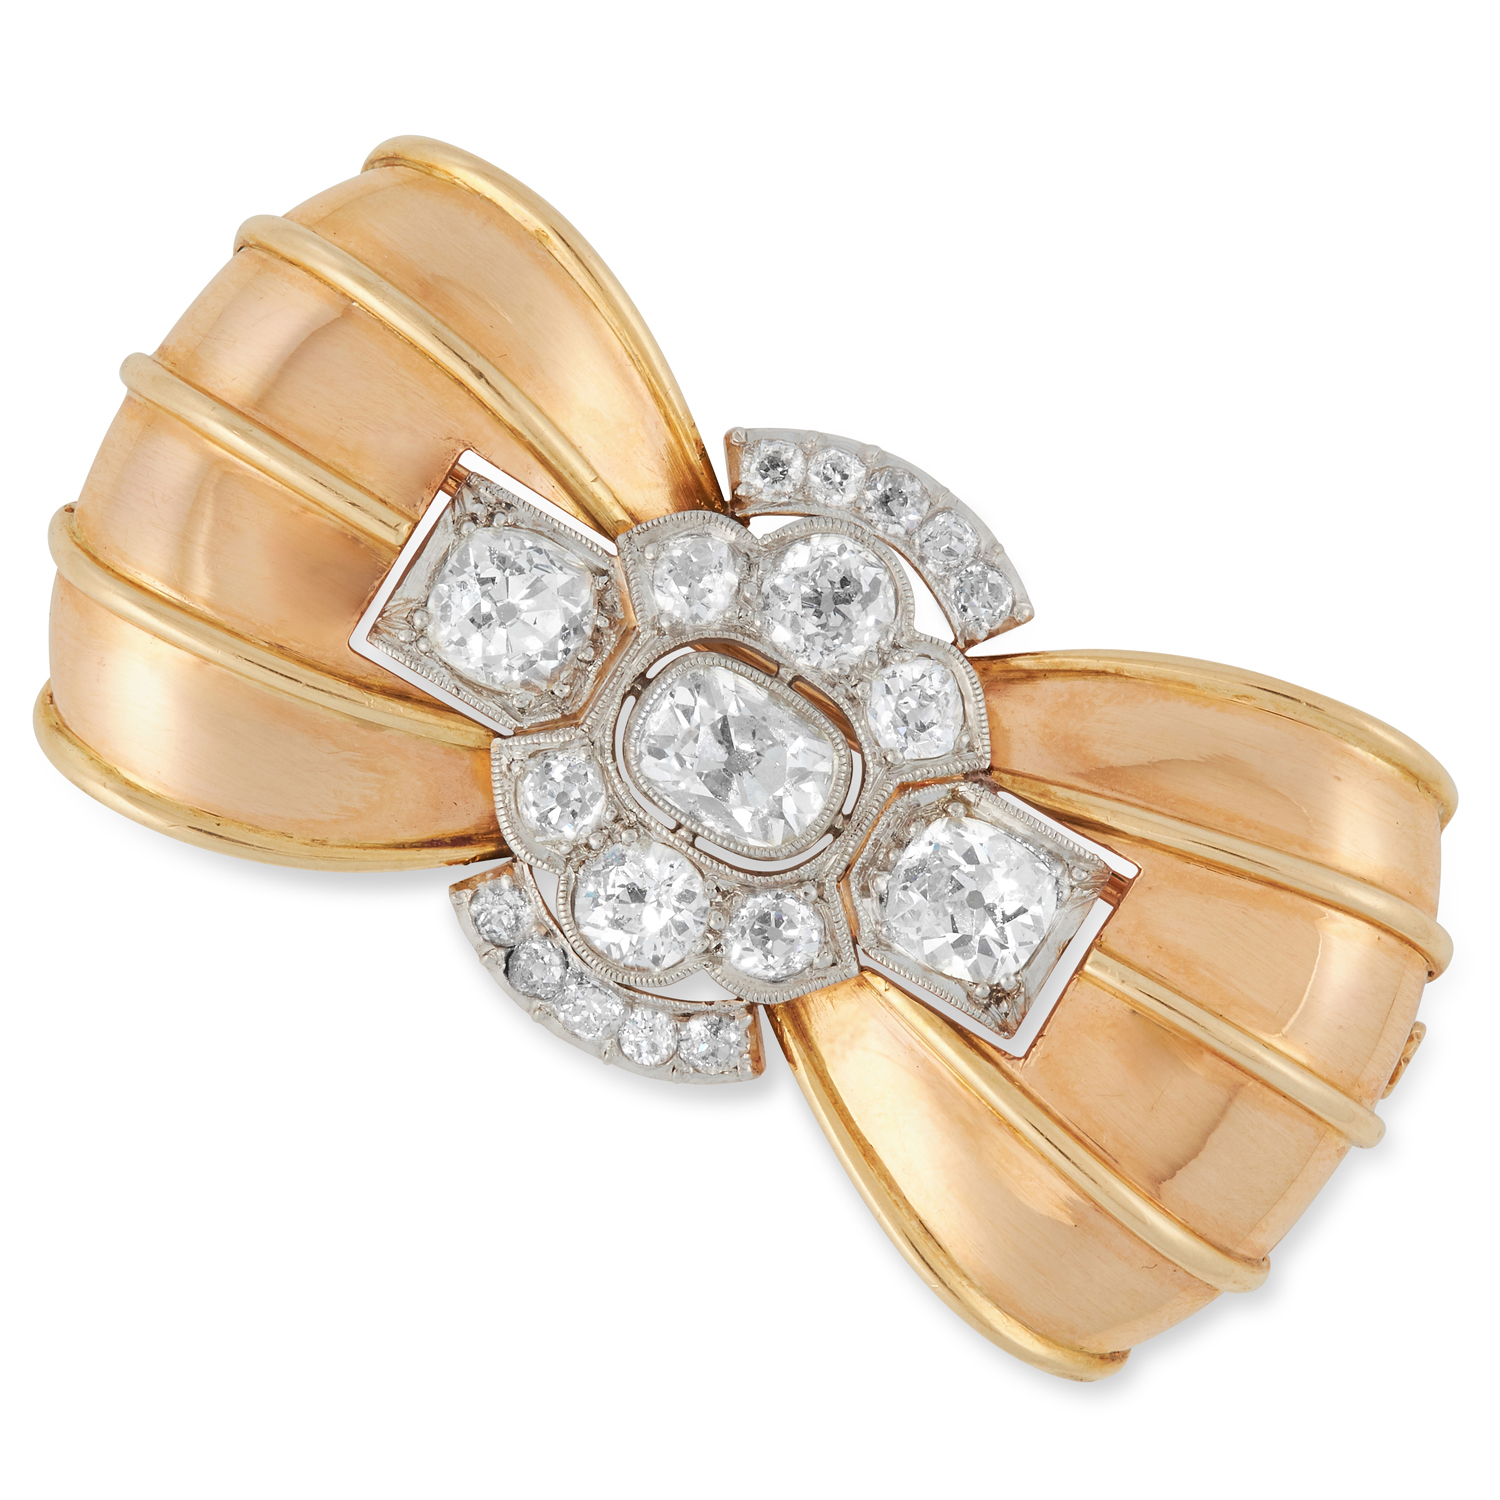 A RETRO DIAMOND BOW BROOCH, 1940s set with a trio old cut diamonds of 1.80, 1.33 and 1.07 carats,